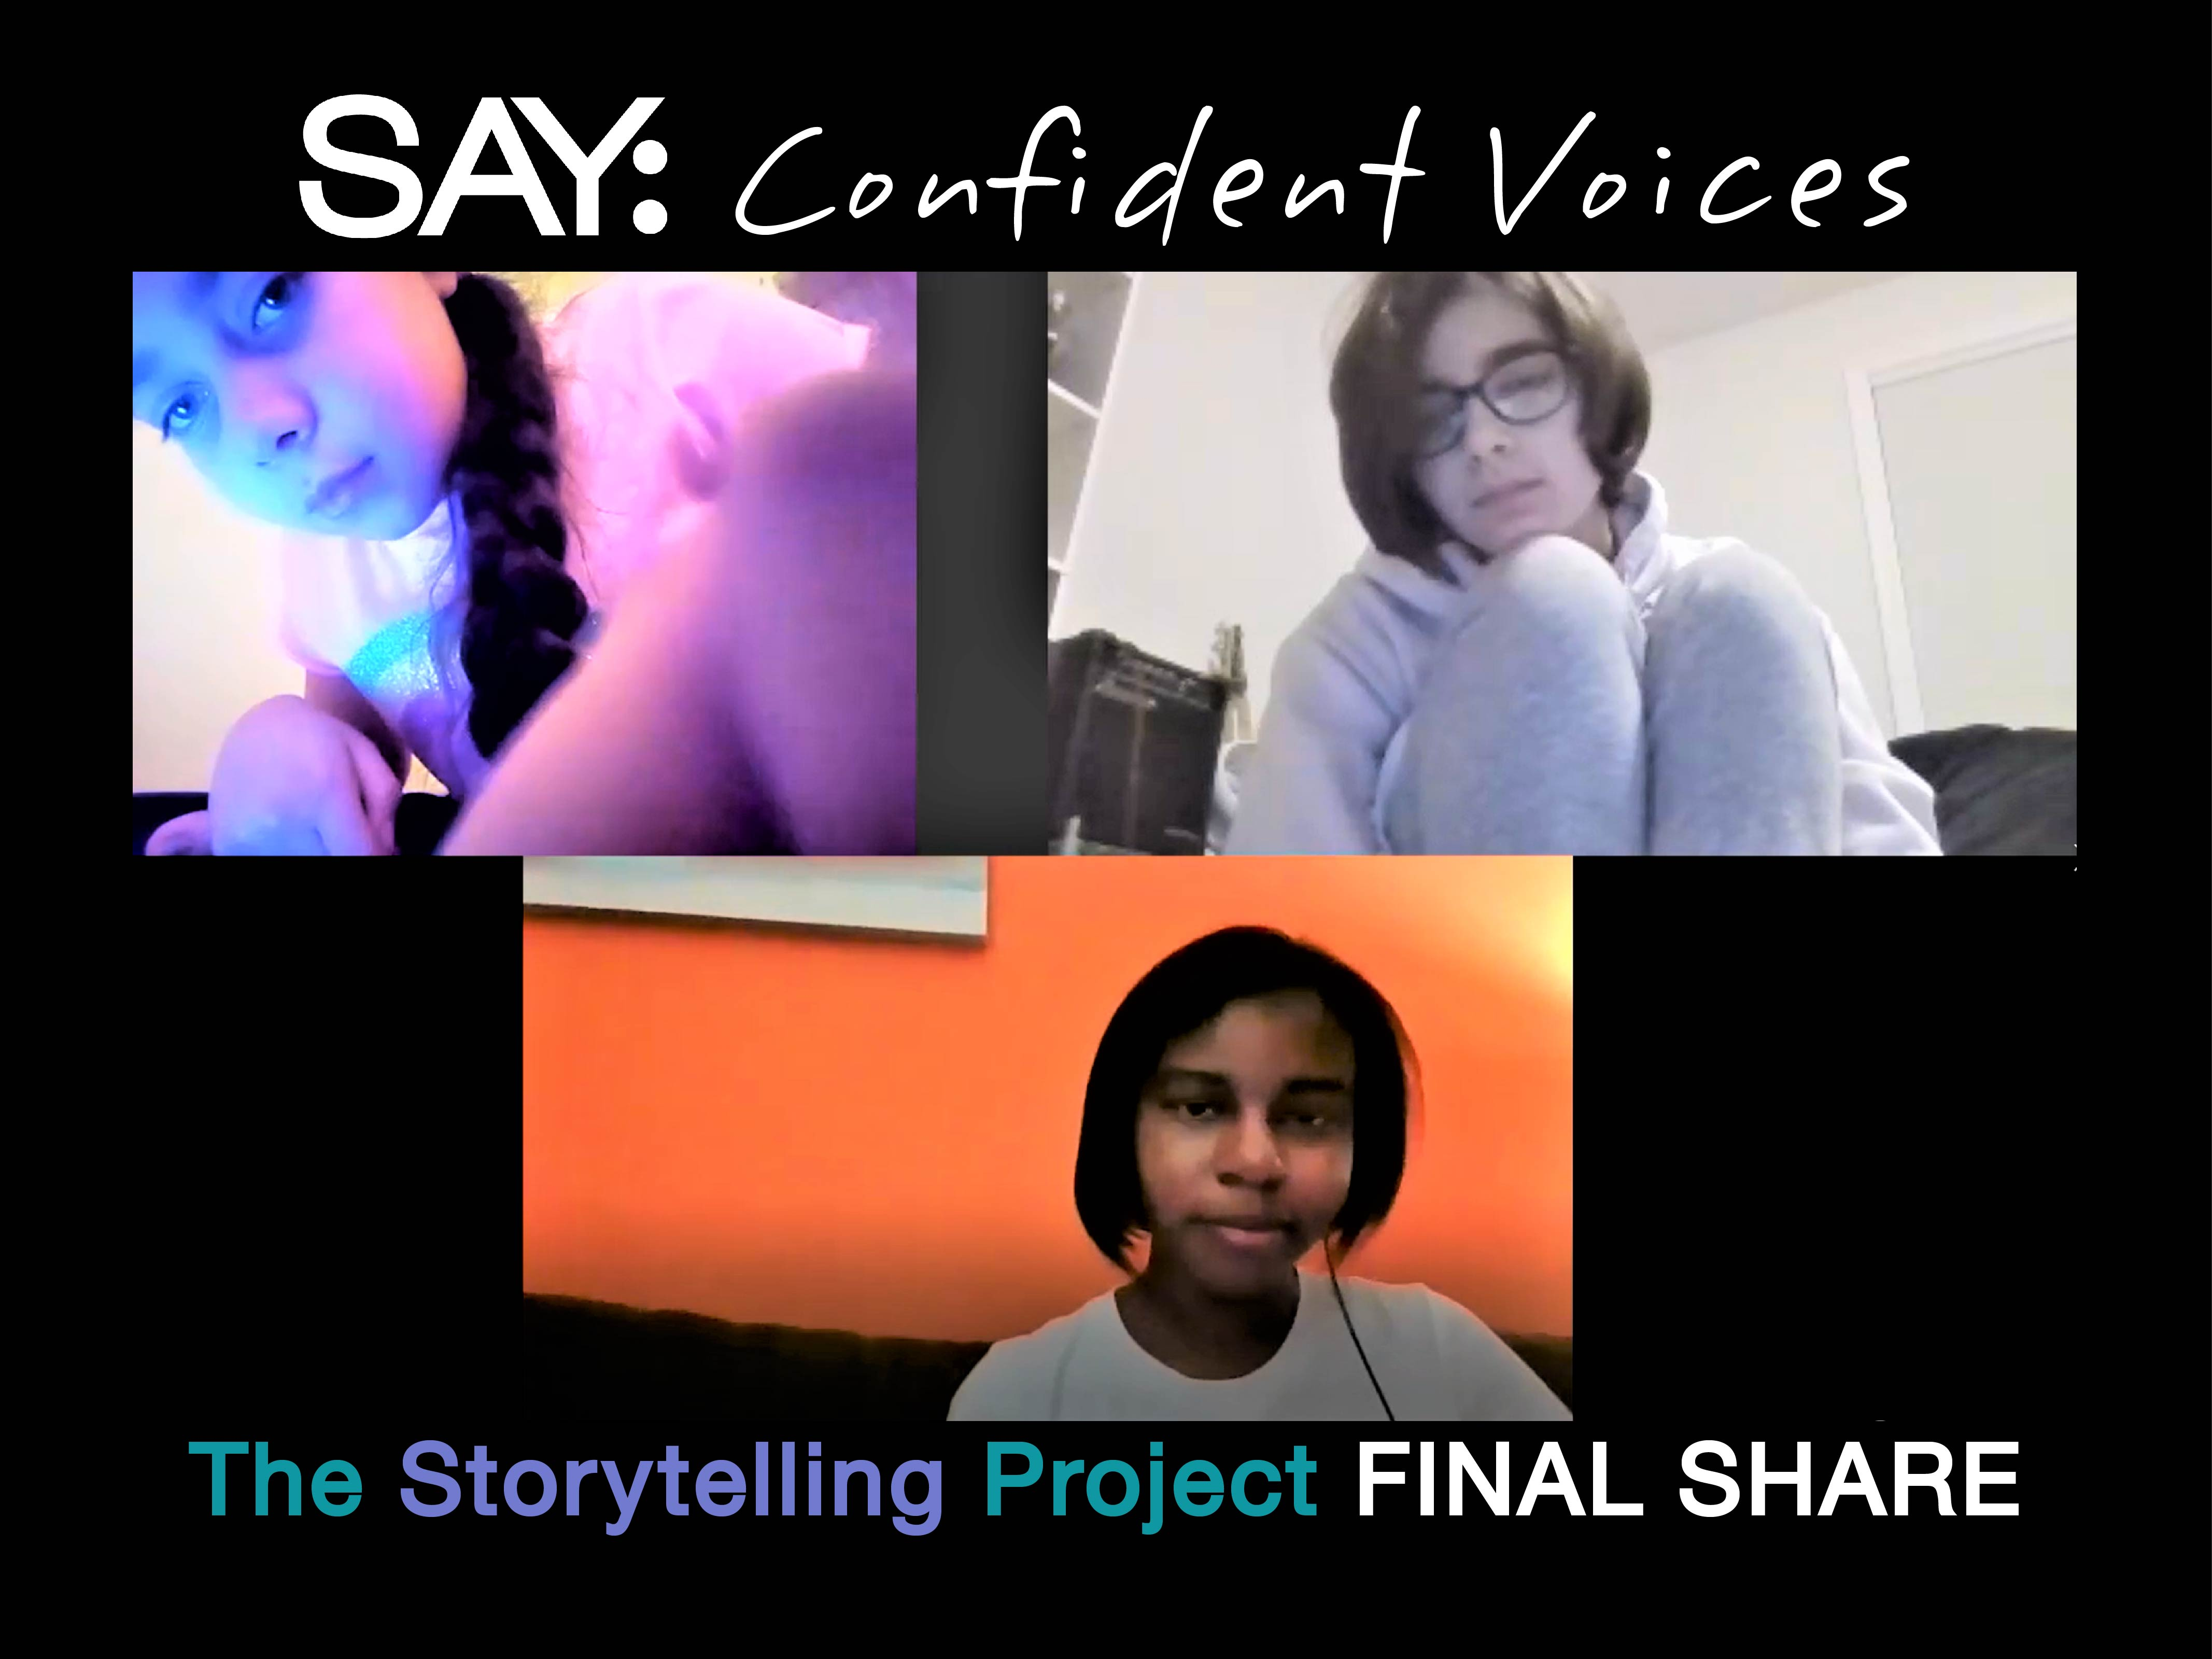 SAY Confident Voices Storytelling Project